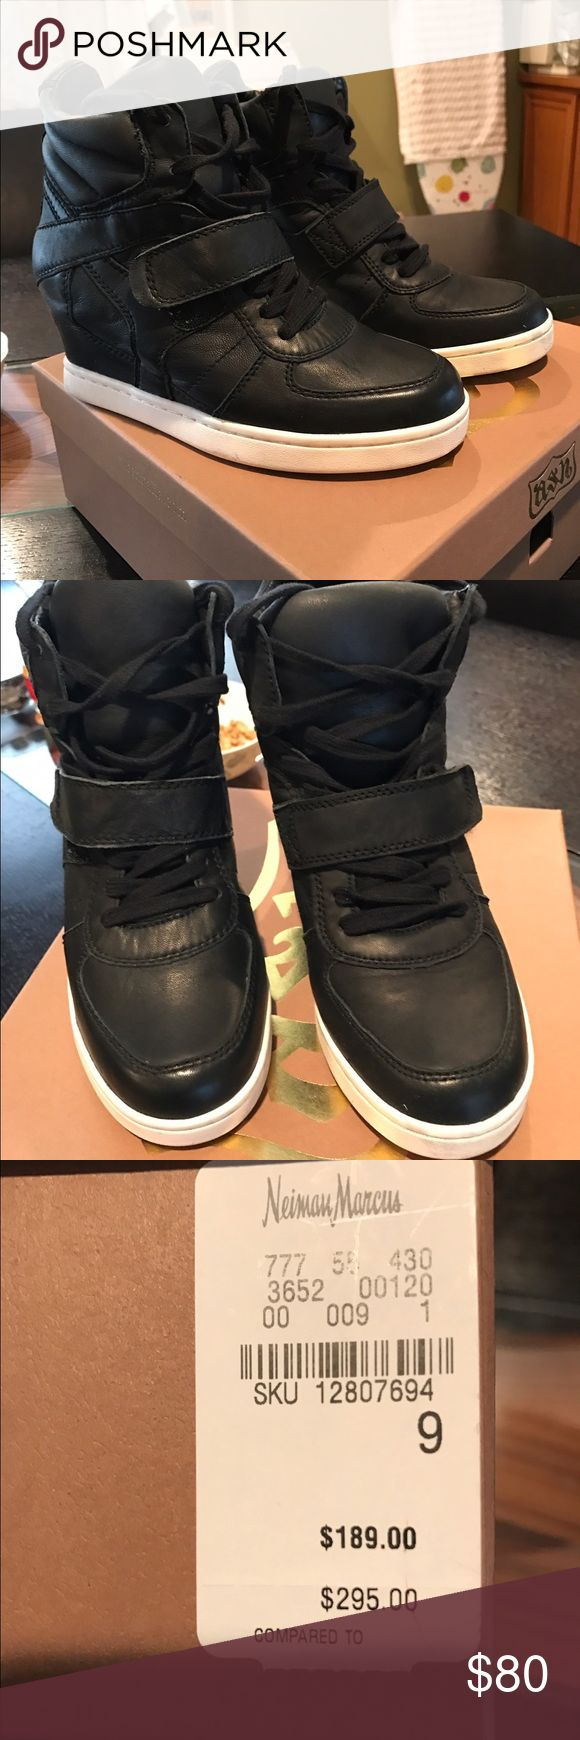 ASH brand shoes. Worn 3 times,very good condition,bought from Neiman Marcus outlet,original box and price on it. Ash Shoes Ankle Boots & Booties